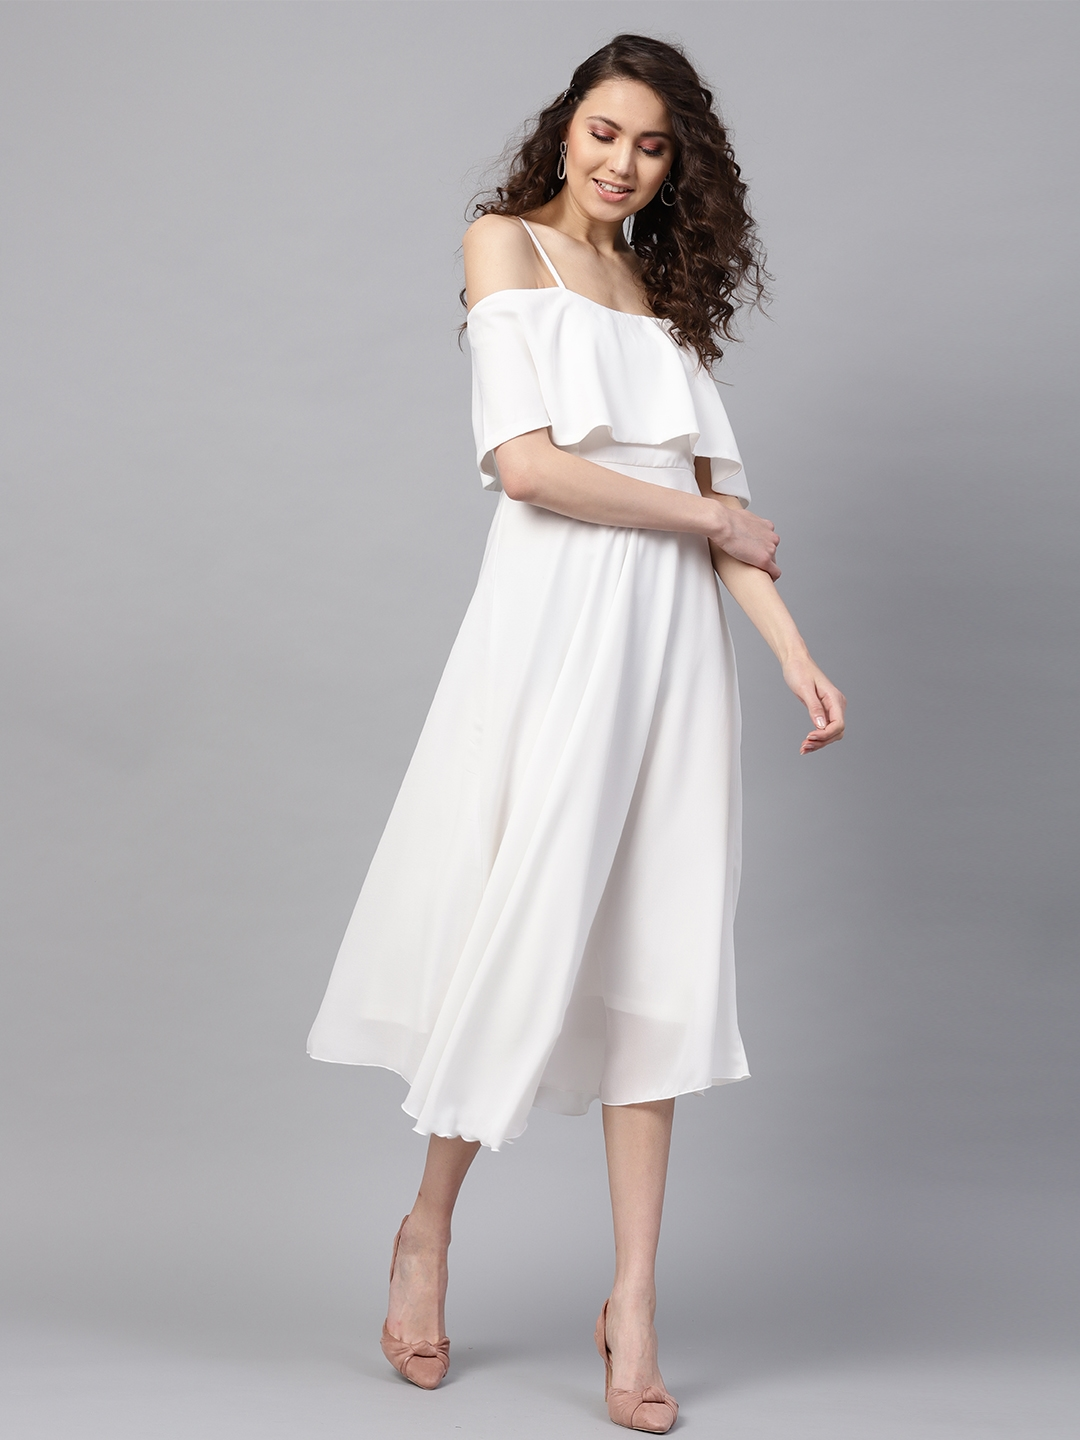 df3a287f6 Buy SASSAFRAS Women White Solid Off Shoulder Midi Fit   Flare Dress -  Dresses for Women 1774648